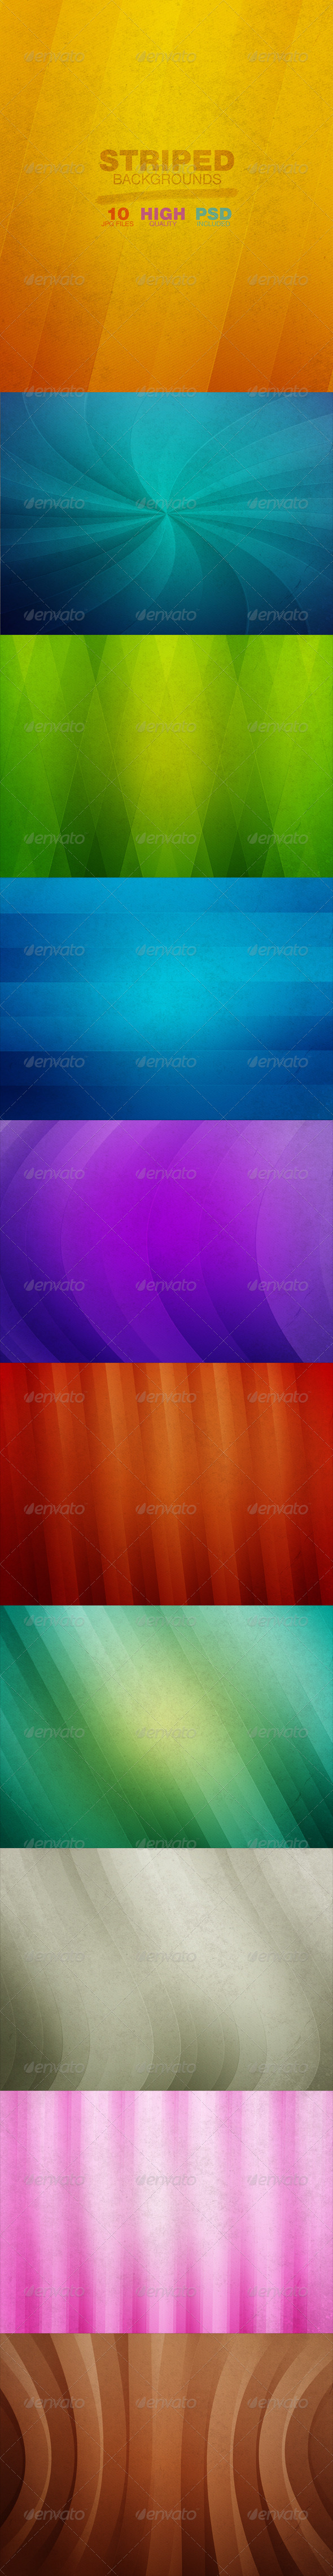 GraphicRiver Striped Backgrounds 7482596